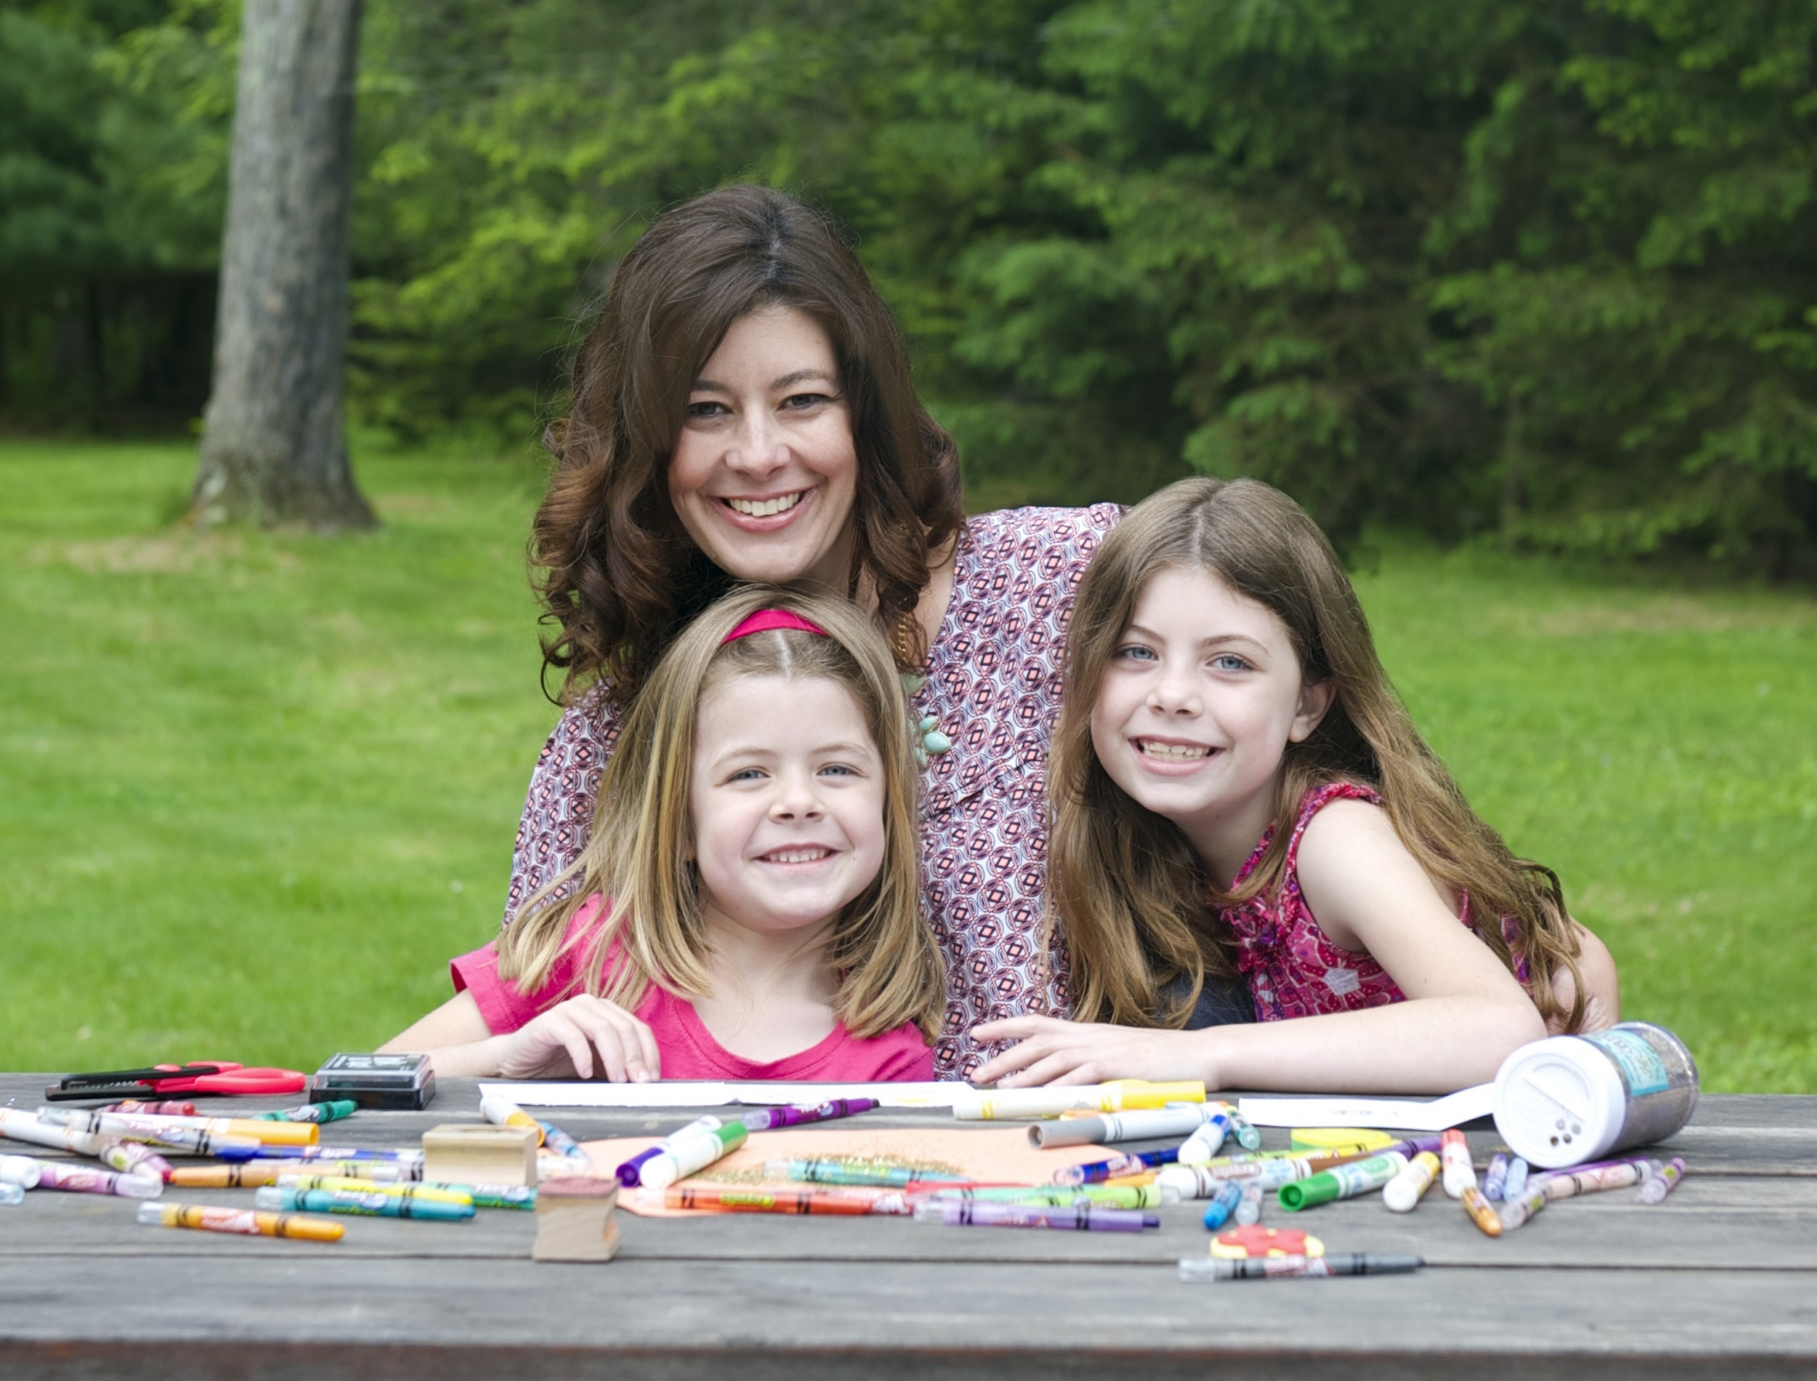 Jennifer Dahl Domaracki and daughters Katie and Ellia., Photo by Kristen Rath Photography